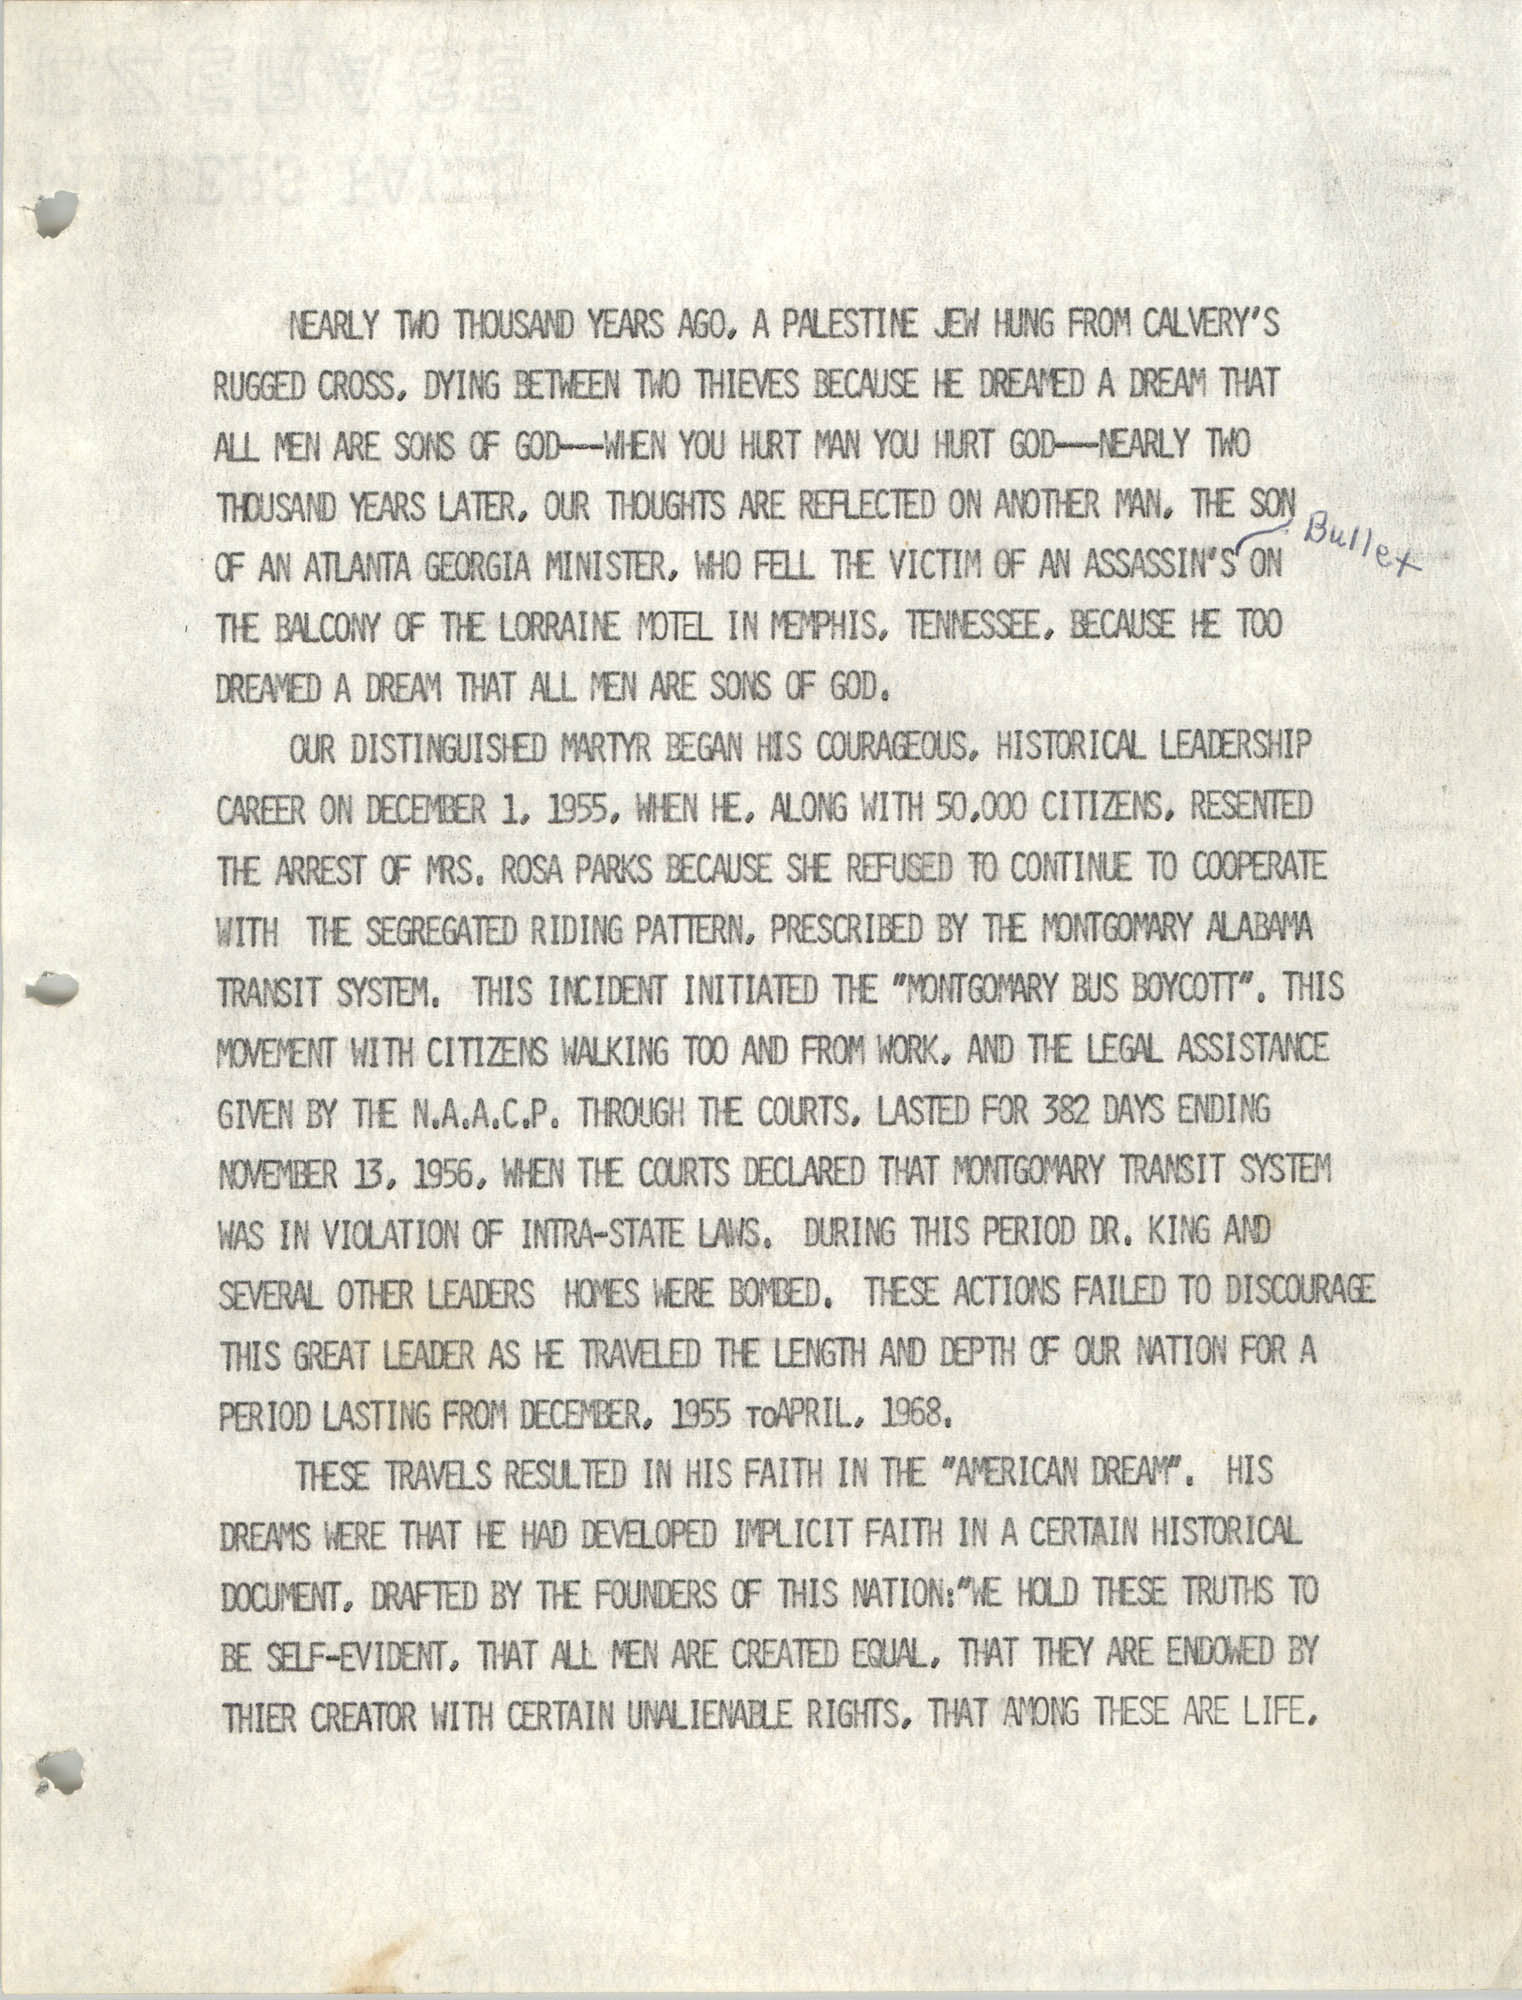 Speech Written and Delivered by J. Arthur Brown, 1979